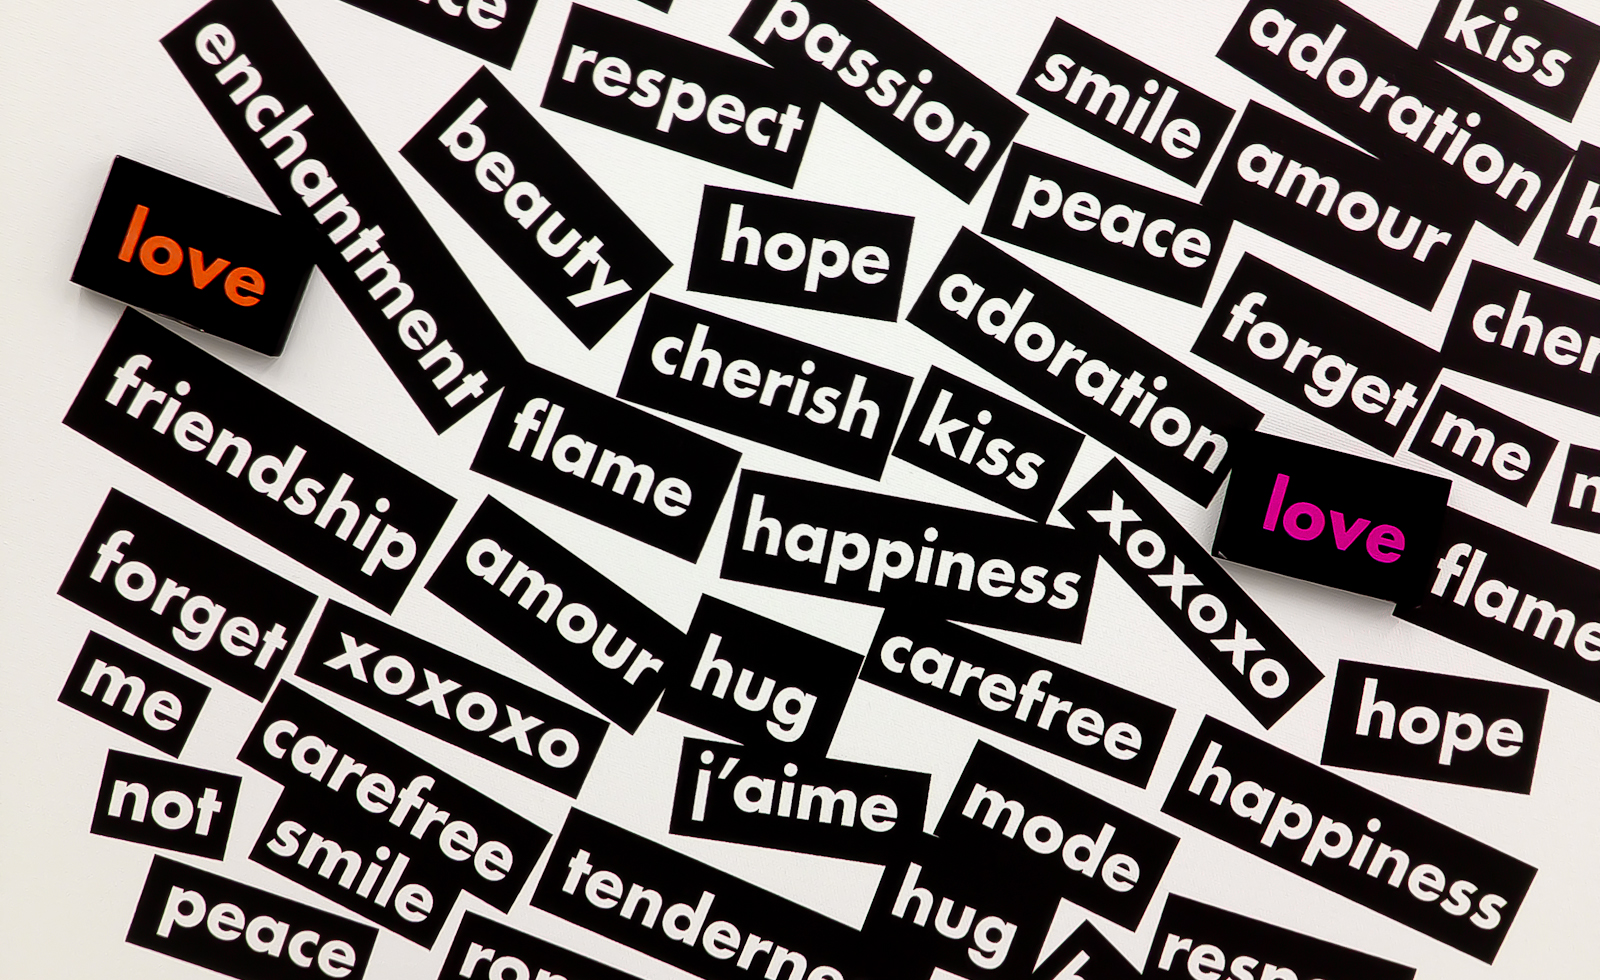 Project 365 [Day 291] Words for Love